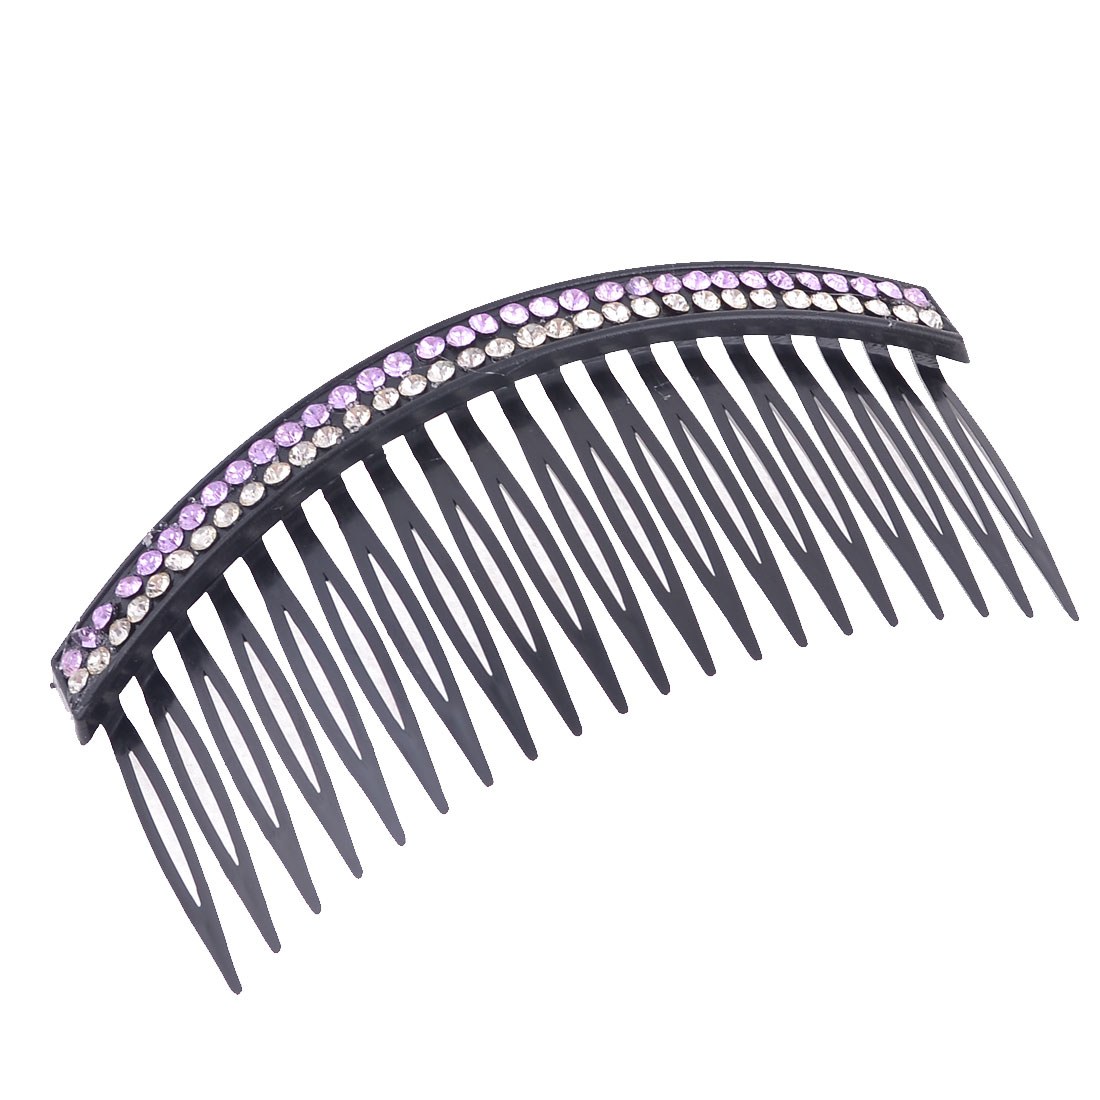 Double Row Purple Bling Rhinestones Accent Comb Hair Clip Clamp Black for Women